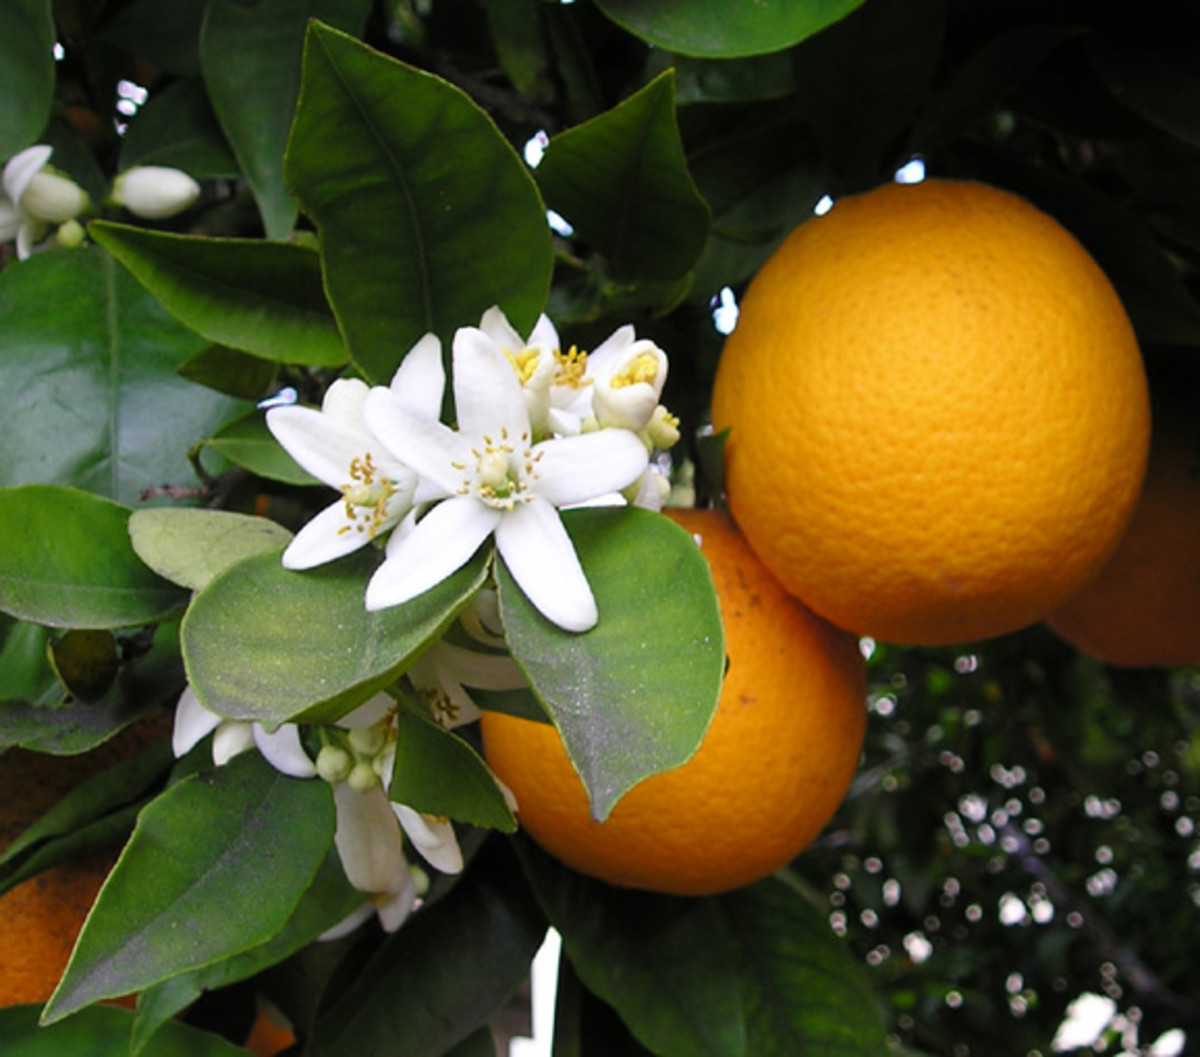 Ellen Levy Finch photographed these orange blossoms and oranges—Citrus sinensis (sweet orange)—on March 23, 2004.